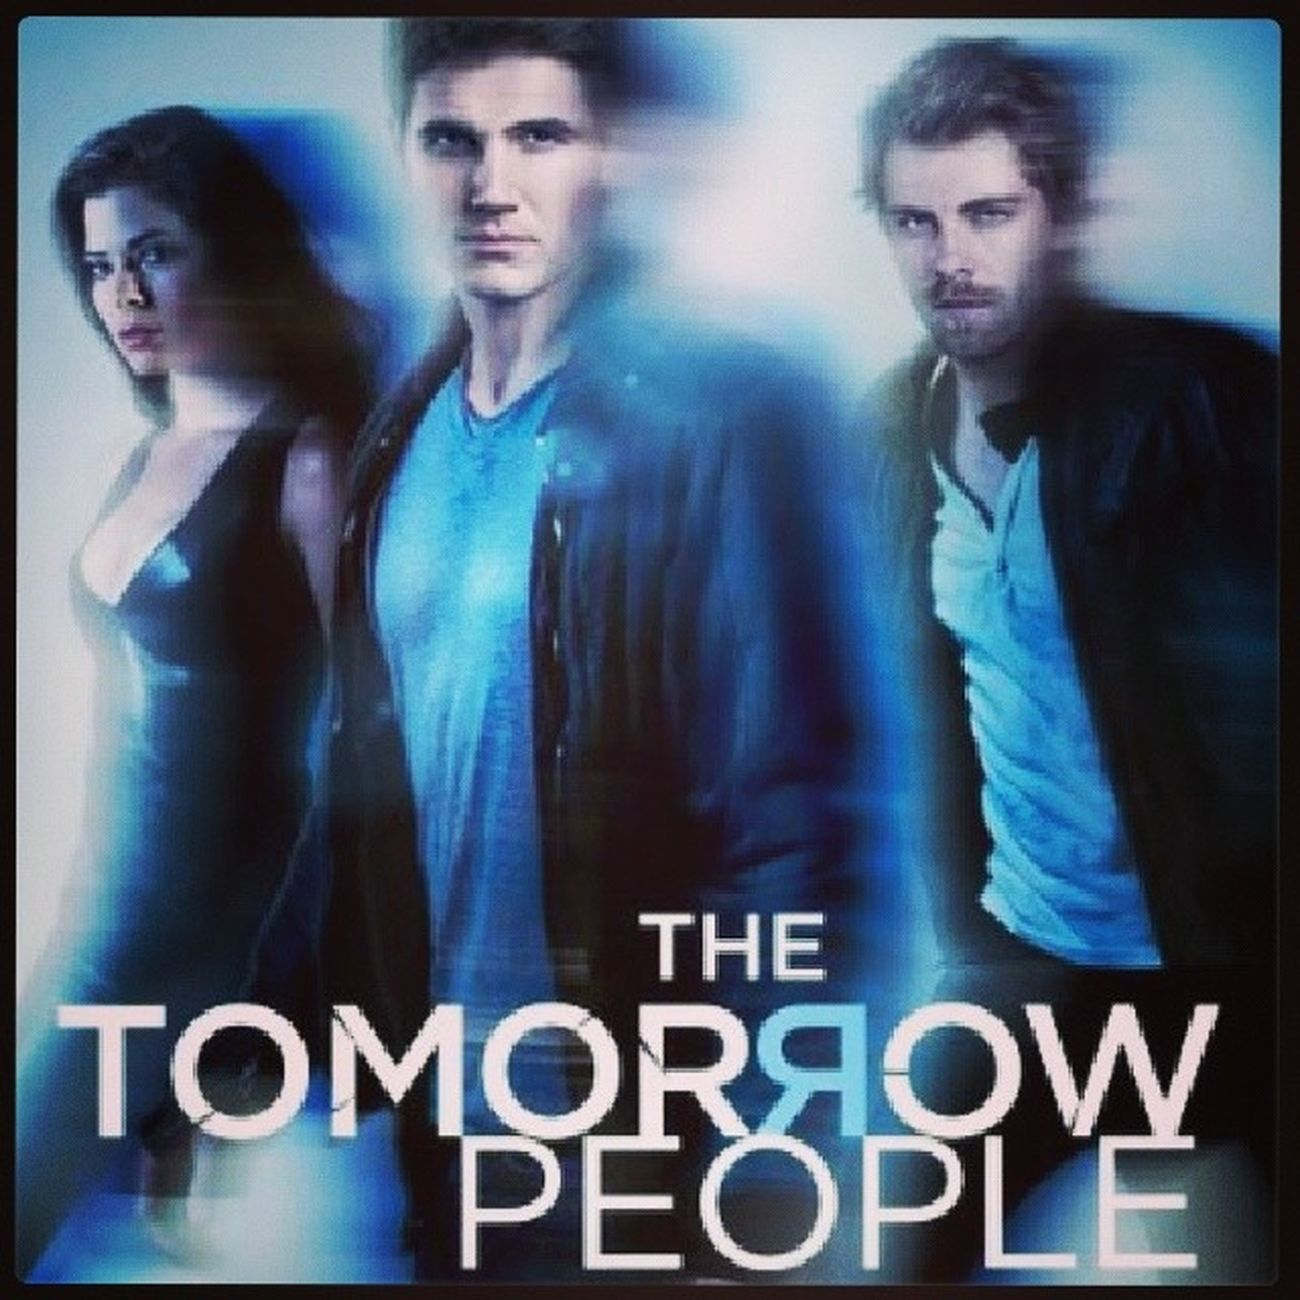 Tomorrow People time su Italia1 Tomorrowpeople Tomorrow people Telefilm serietv tv tvshow tvseries